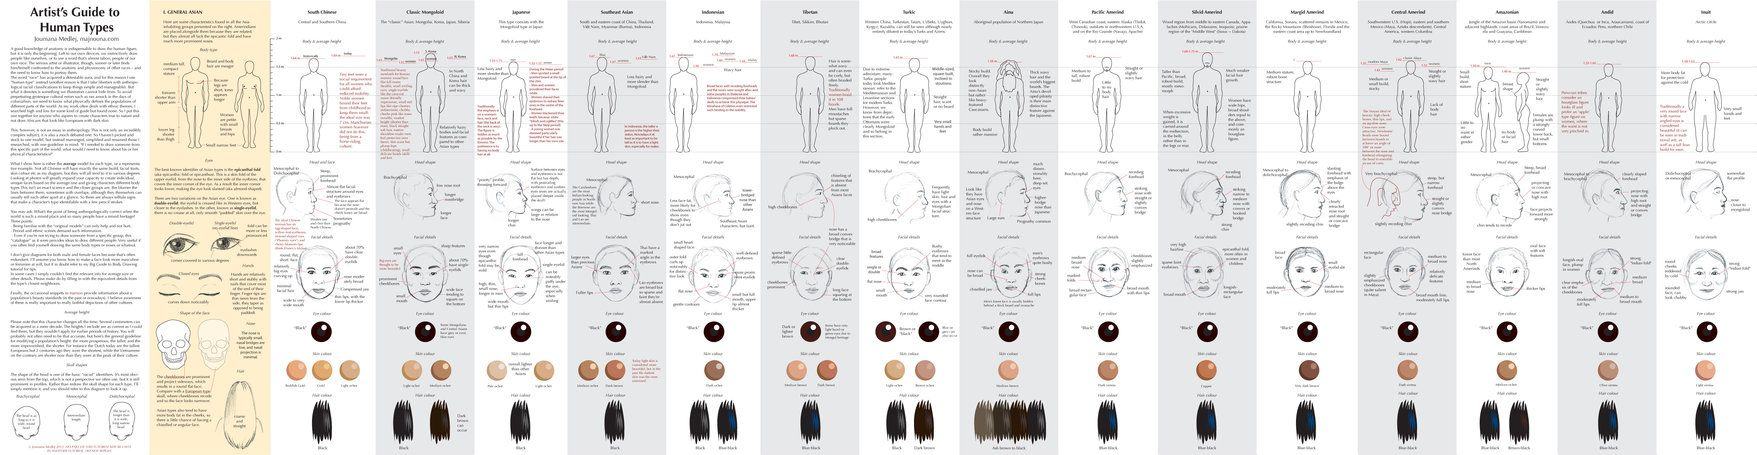 30+ Guide to Human Types part 1 by Majnouna on DeviantArt